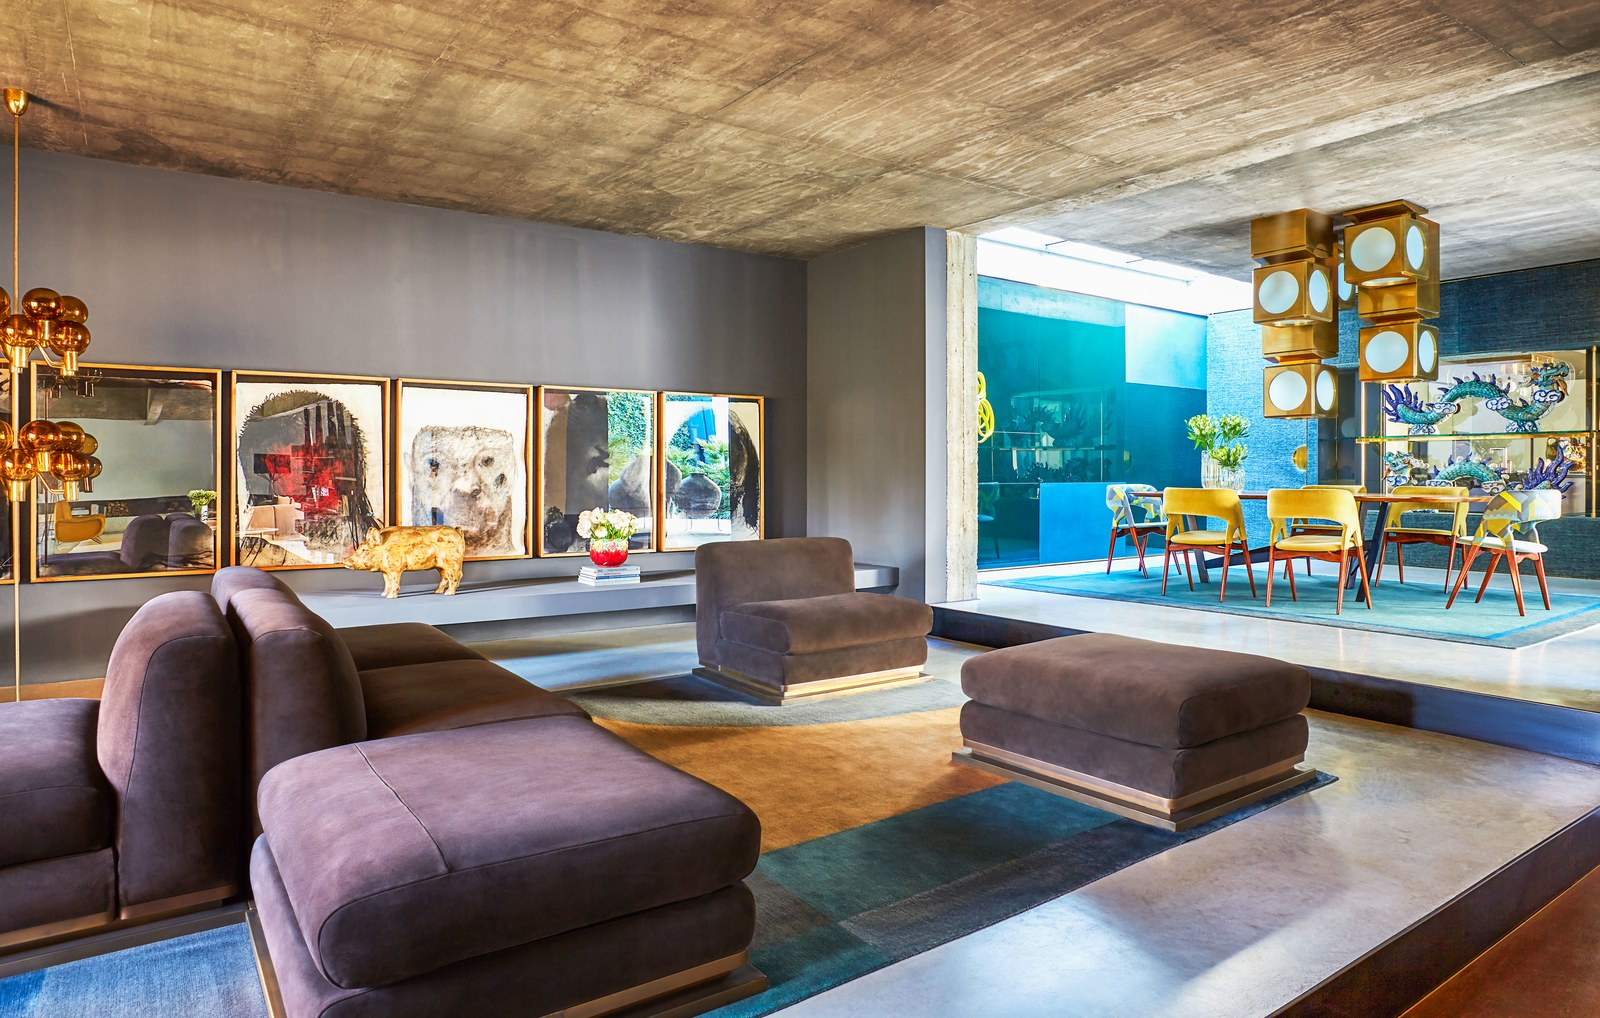 10 Italian Interior Designers You Need To Know italian interior designer 10 Italian Interior Designers You Need To Know AD0220 DE COTIIS 8